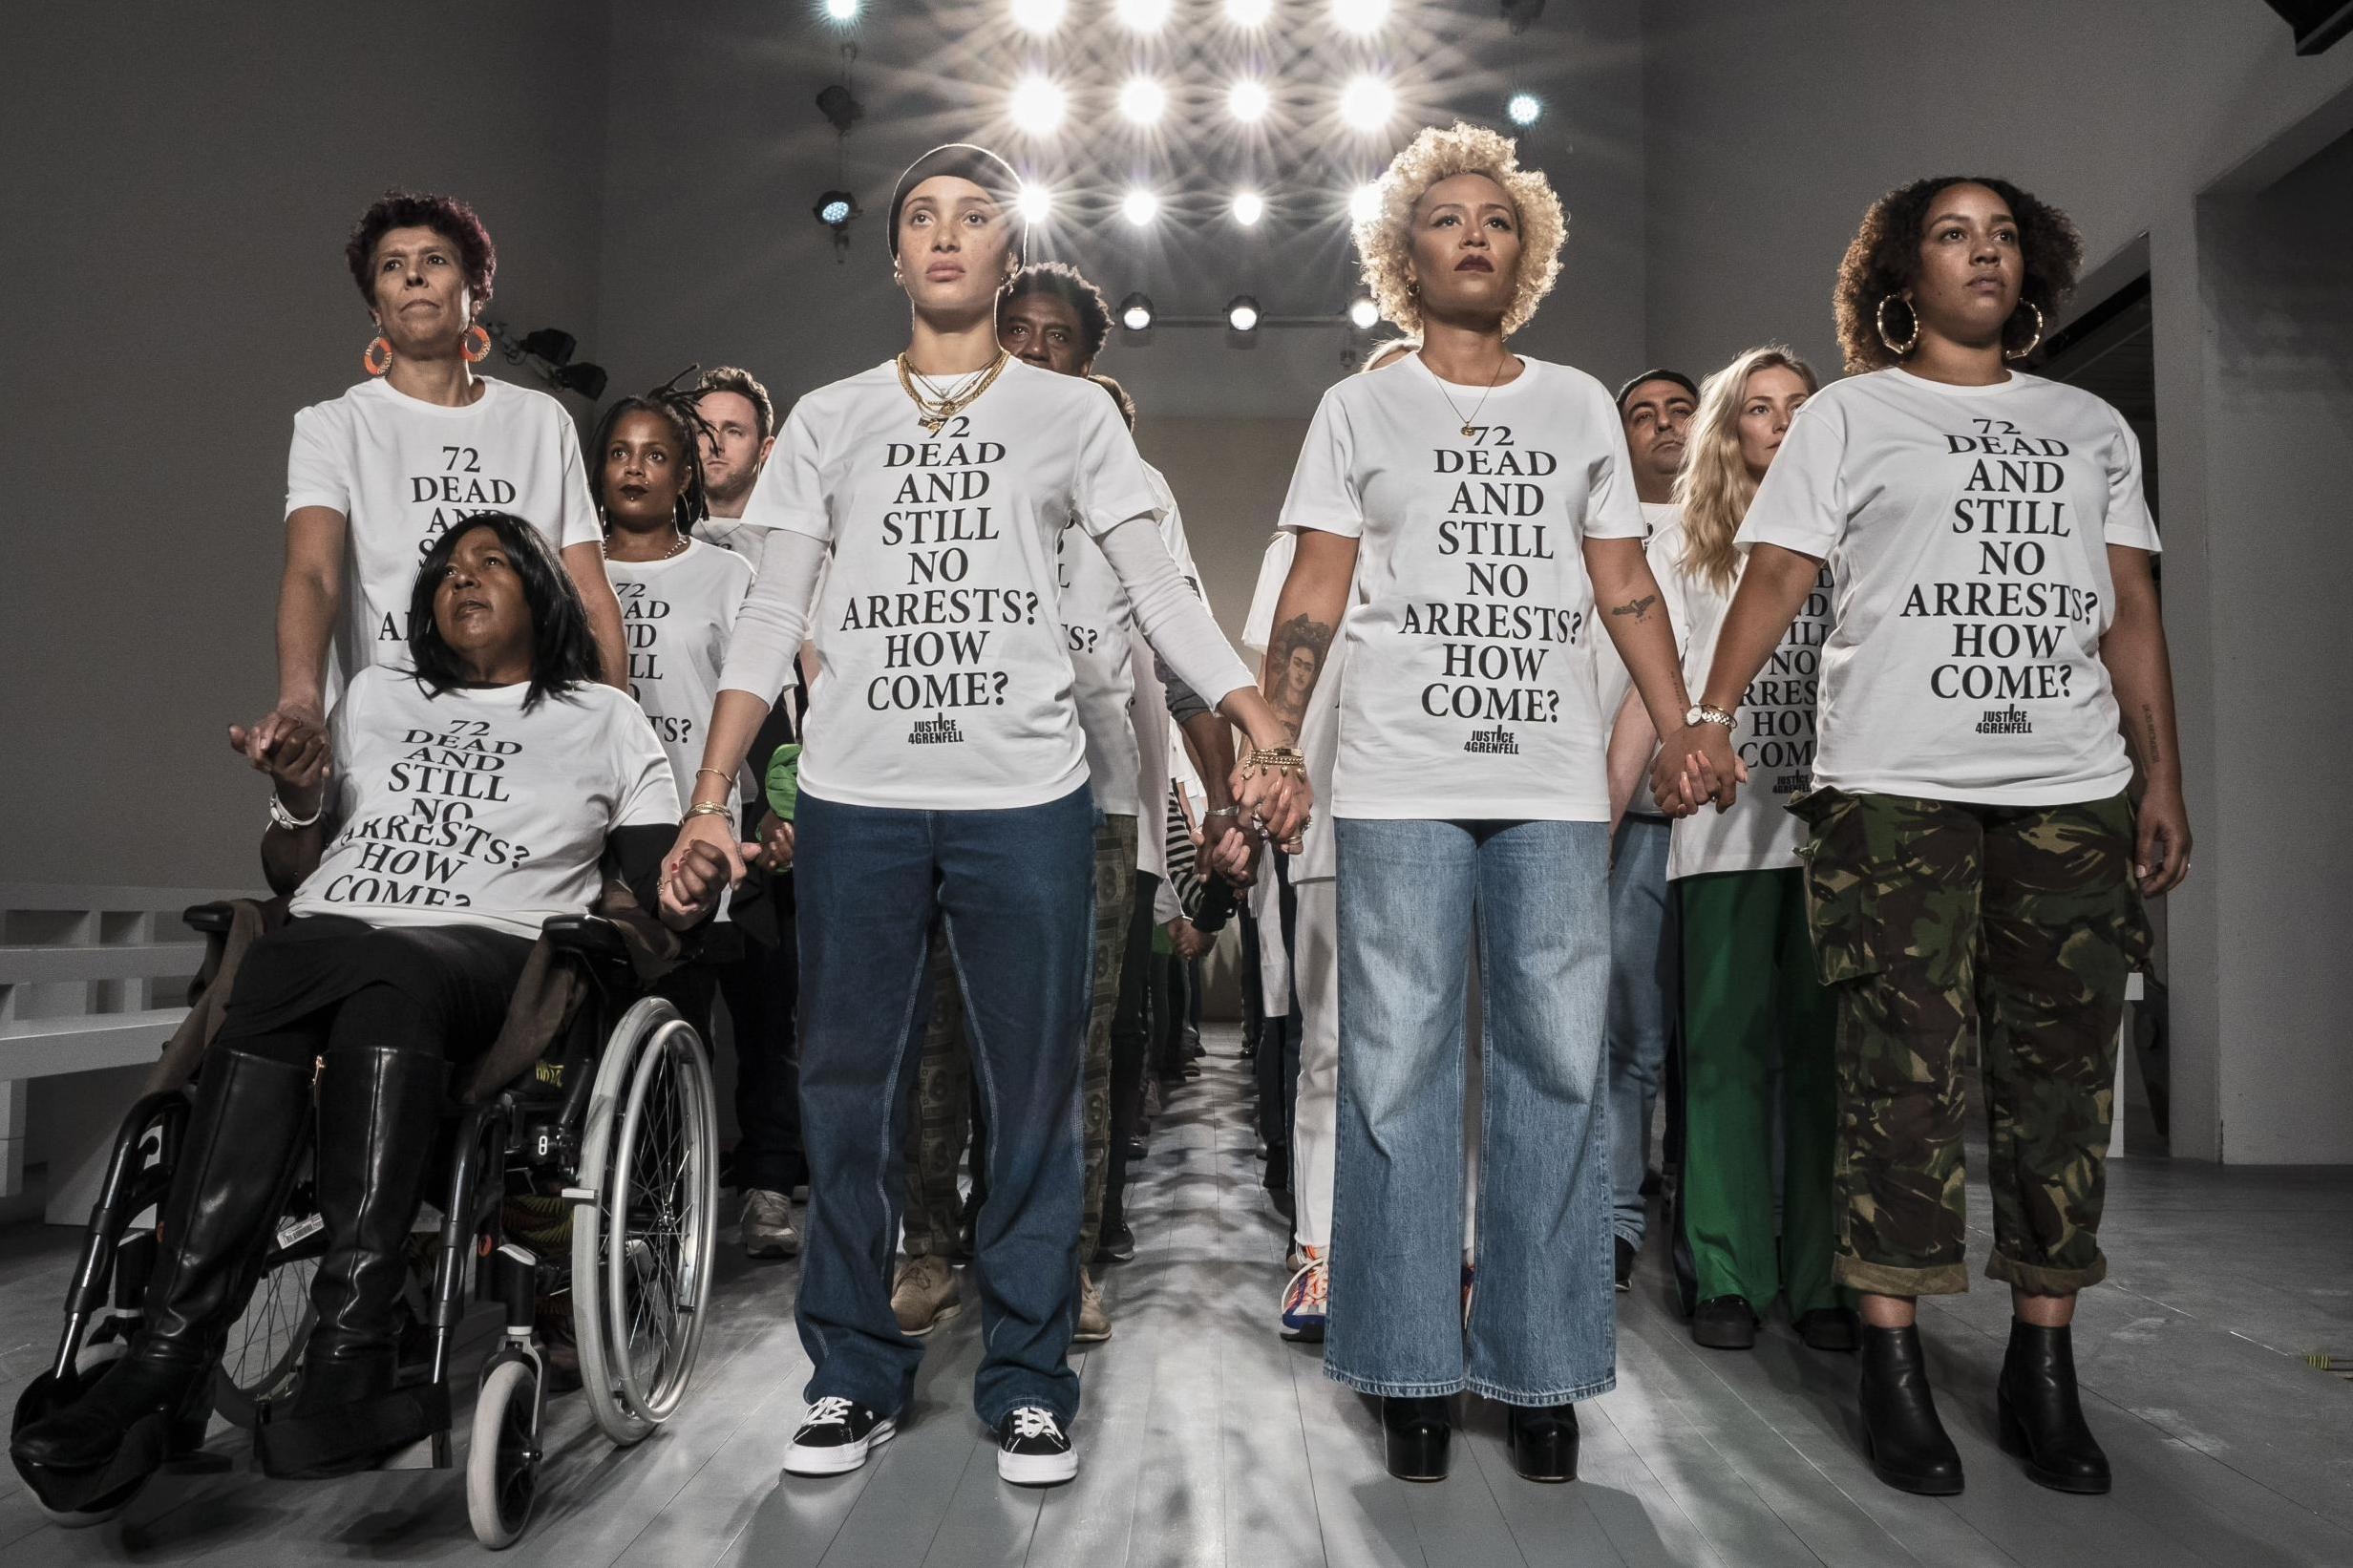 London Fashion Week: Grenfell activists take to runway to demand justice for victims